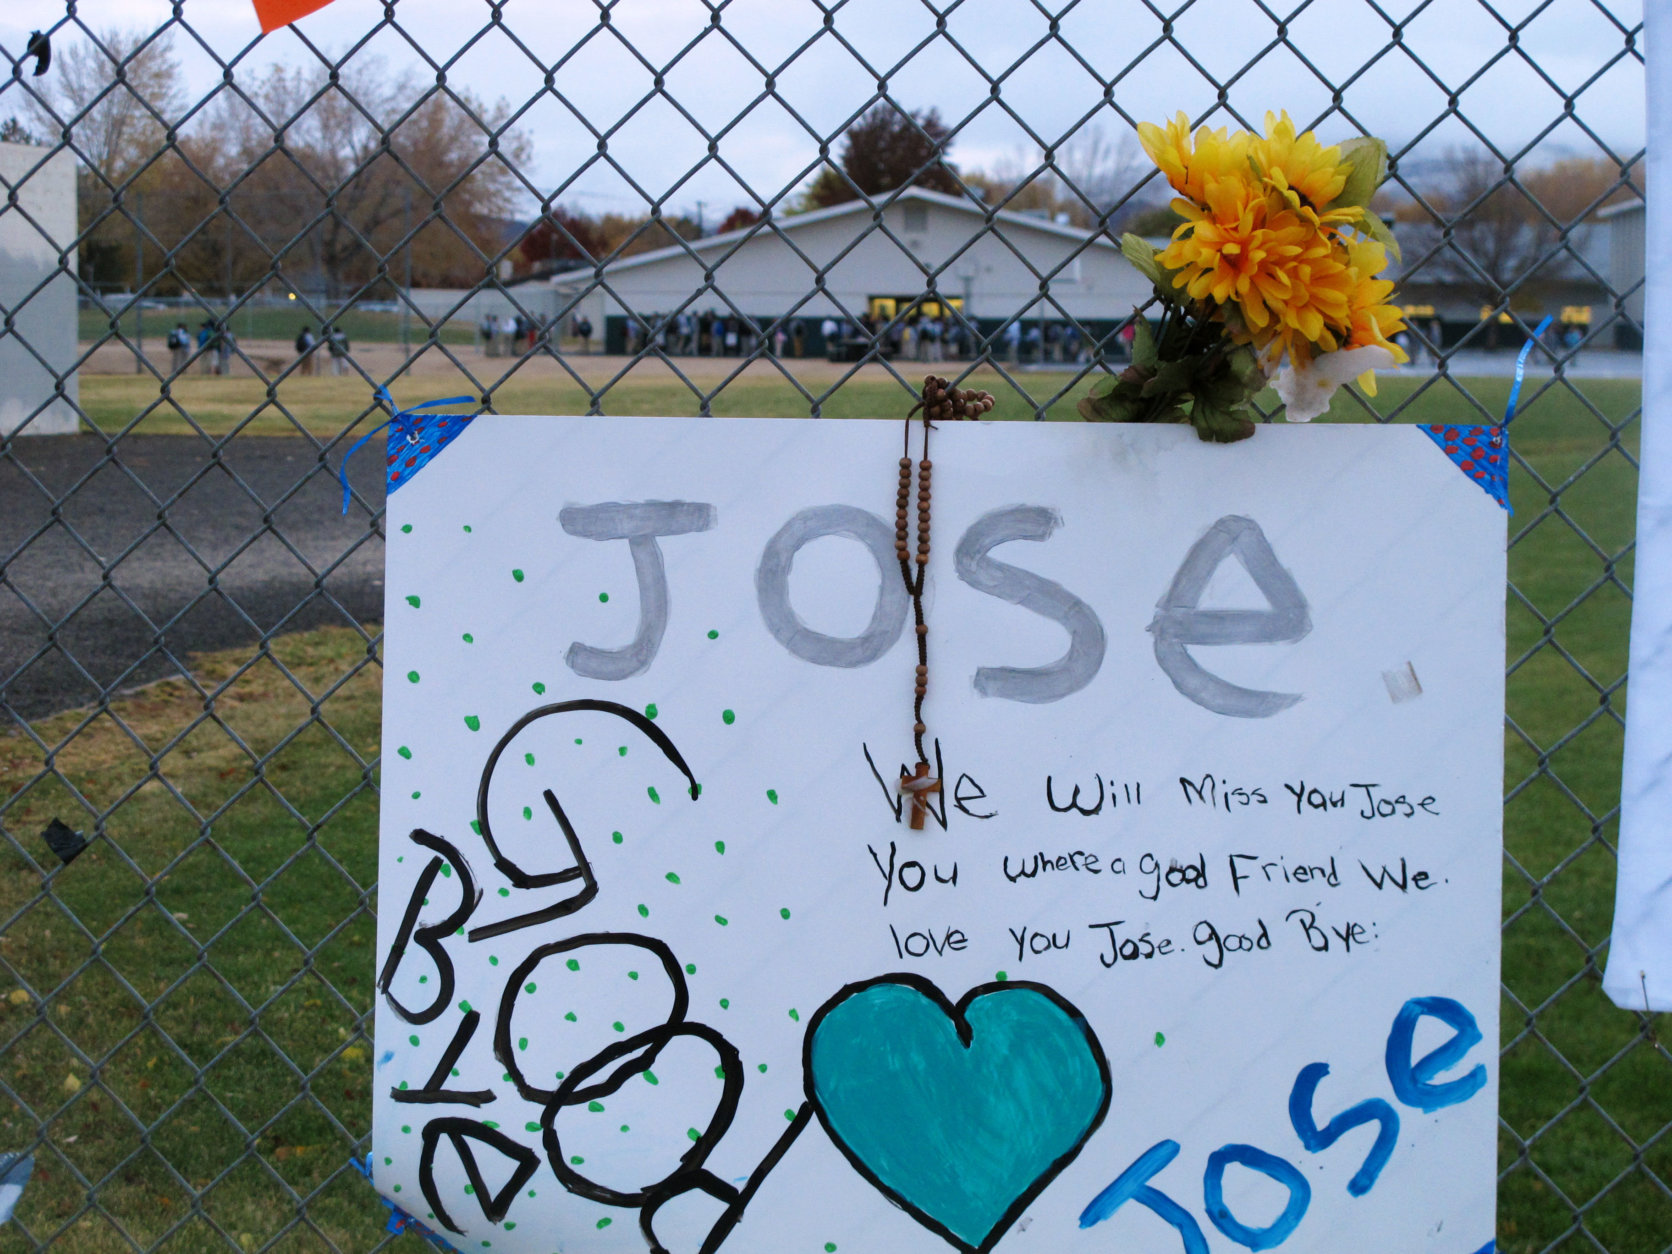 Students return to Sparks Middle School on Monday morning, Oct. 28, 2013, for the first time since Oct. 21, when a 12-year-old student gunned down a teacher and wounded two classmates before killing himself. Friends added a rememberence of the shooter, Jose Reyes, at a makeshift memorial also honoring the fallen math teacher and ex-Marine Michael Landsberry. Police don't know why seventh grader Jose Reyes killed 45-year-old Michael Landsberry and shot two 12-year-old boys before turning the handgun on himself. AP Photo/Scott Sonner)